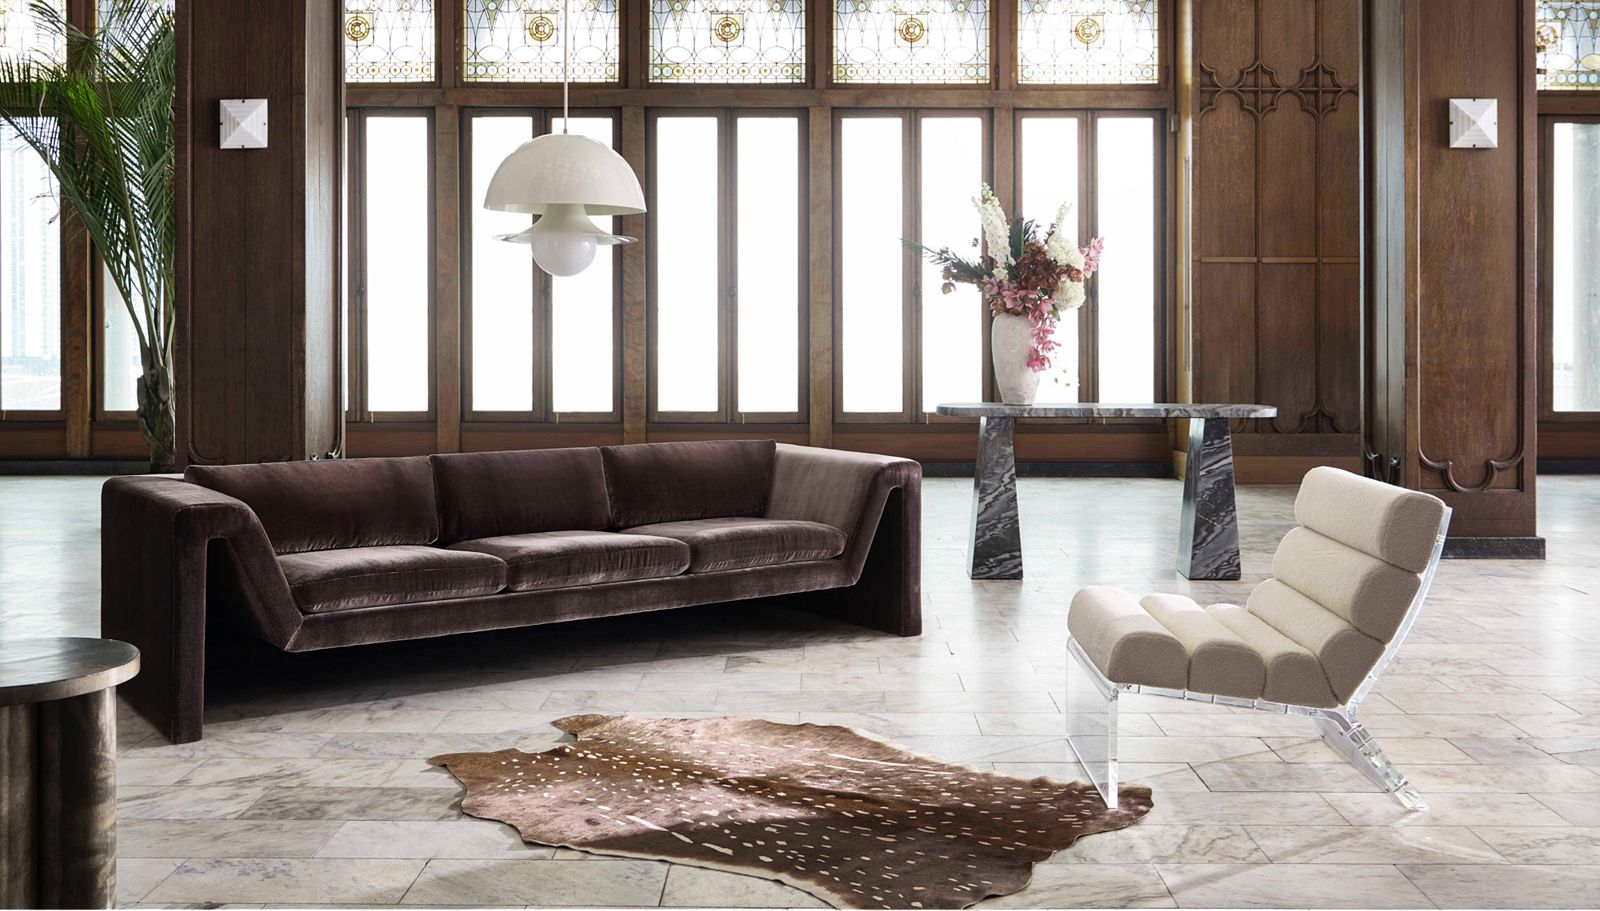 Large and spacious room with brown couch and white accent chair with a rug between them